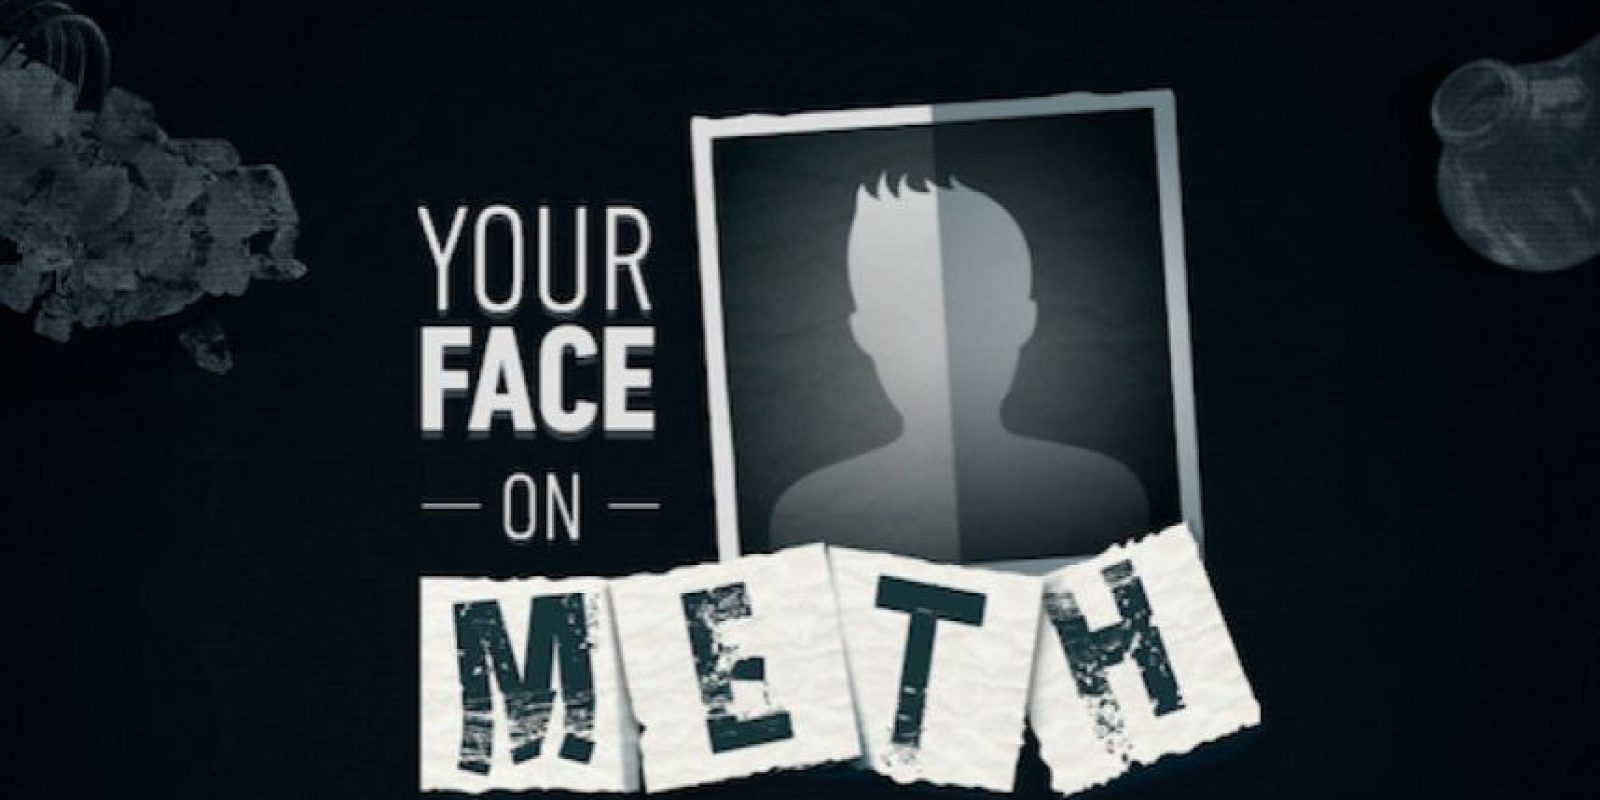 Foto: Your Face on Meth